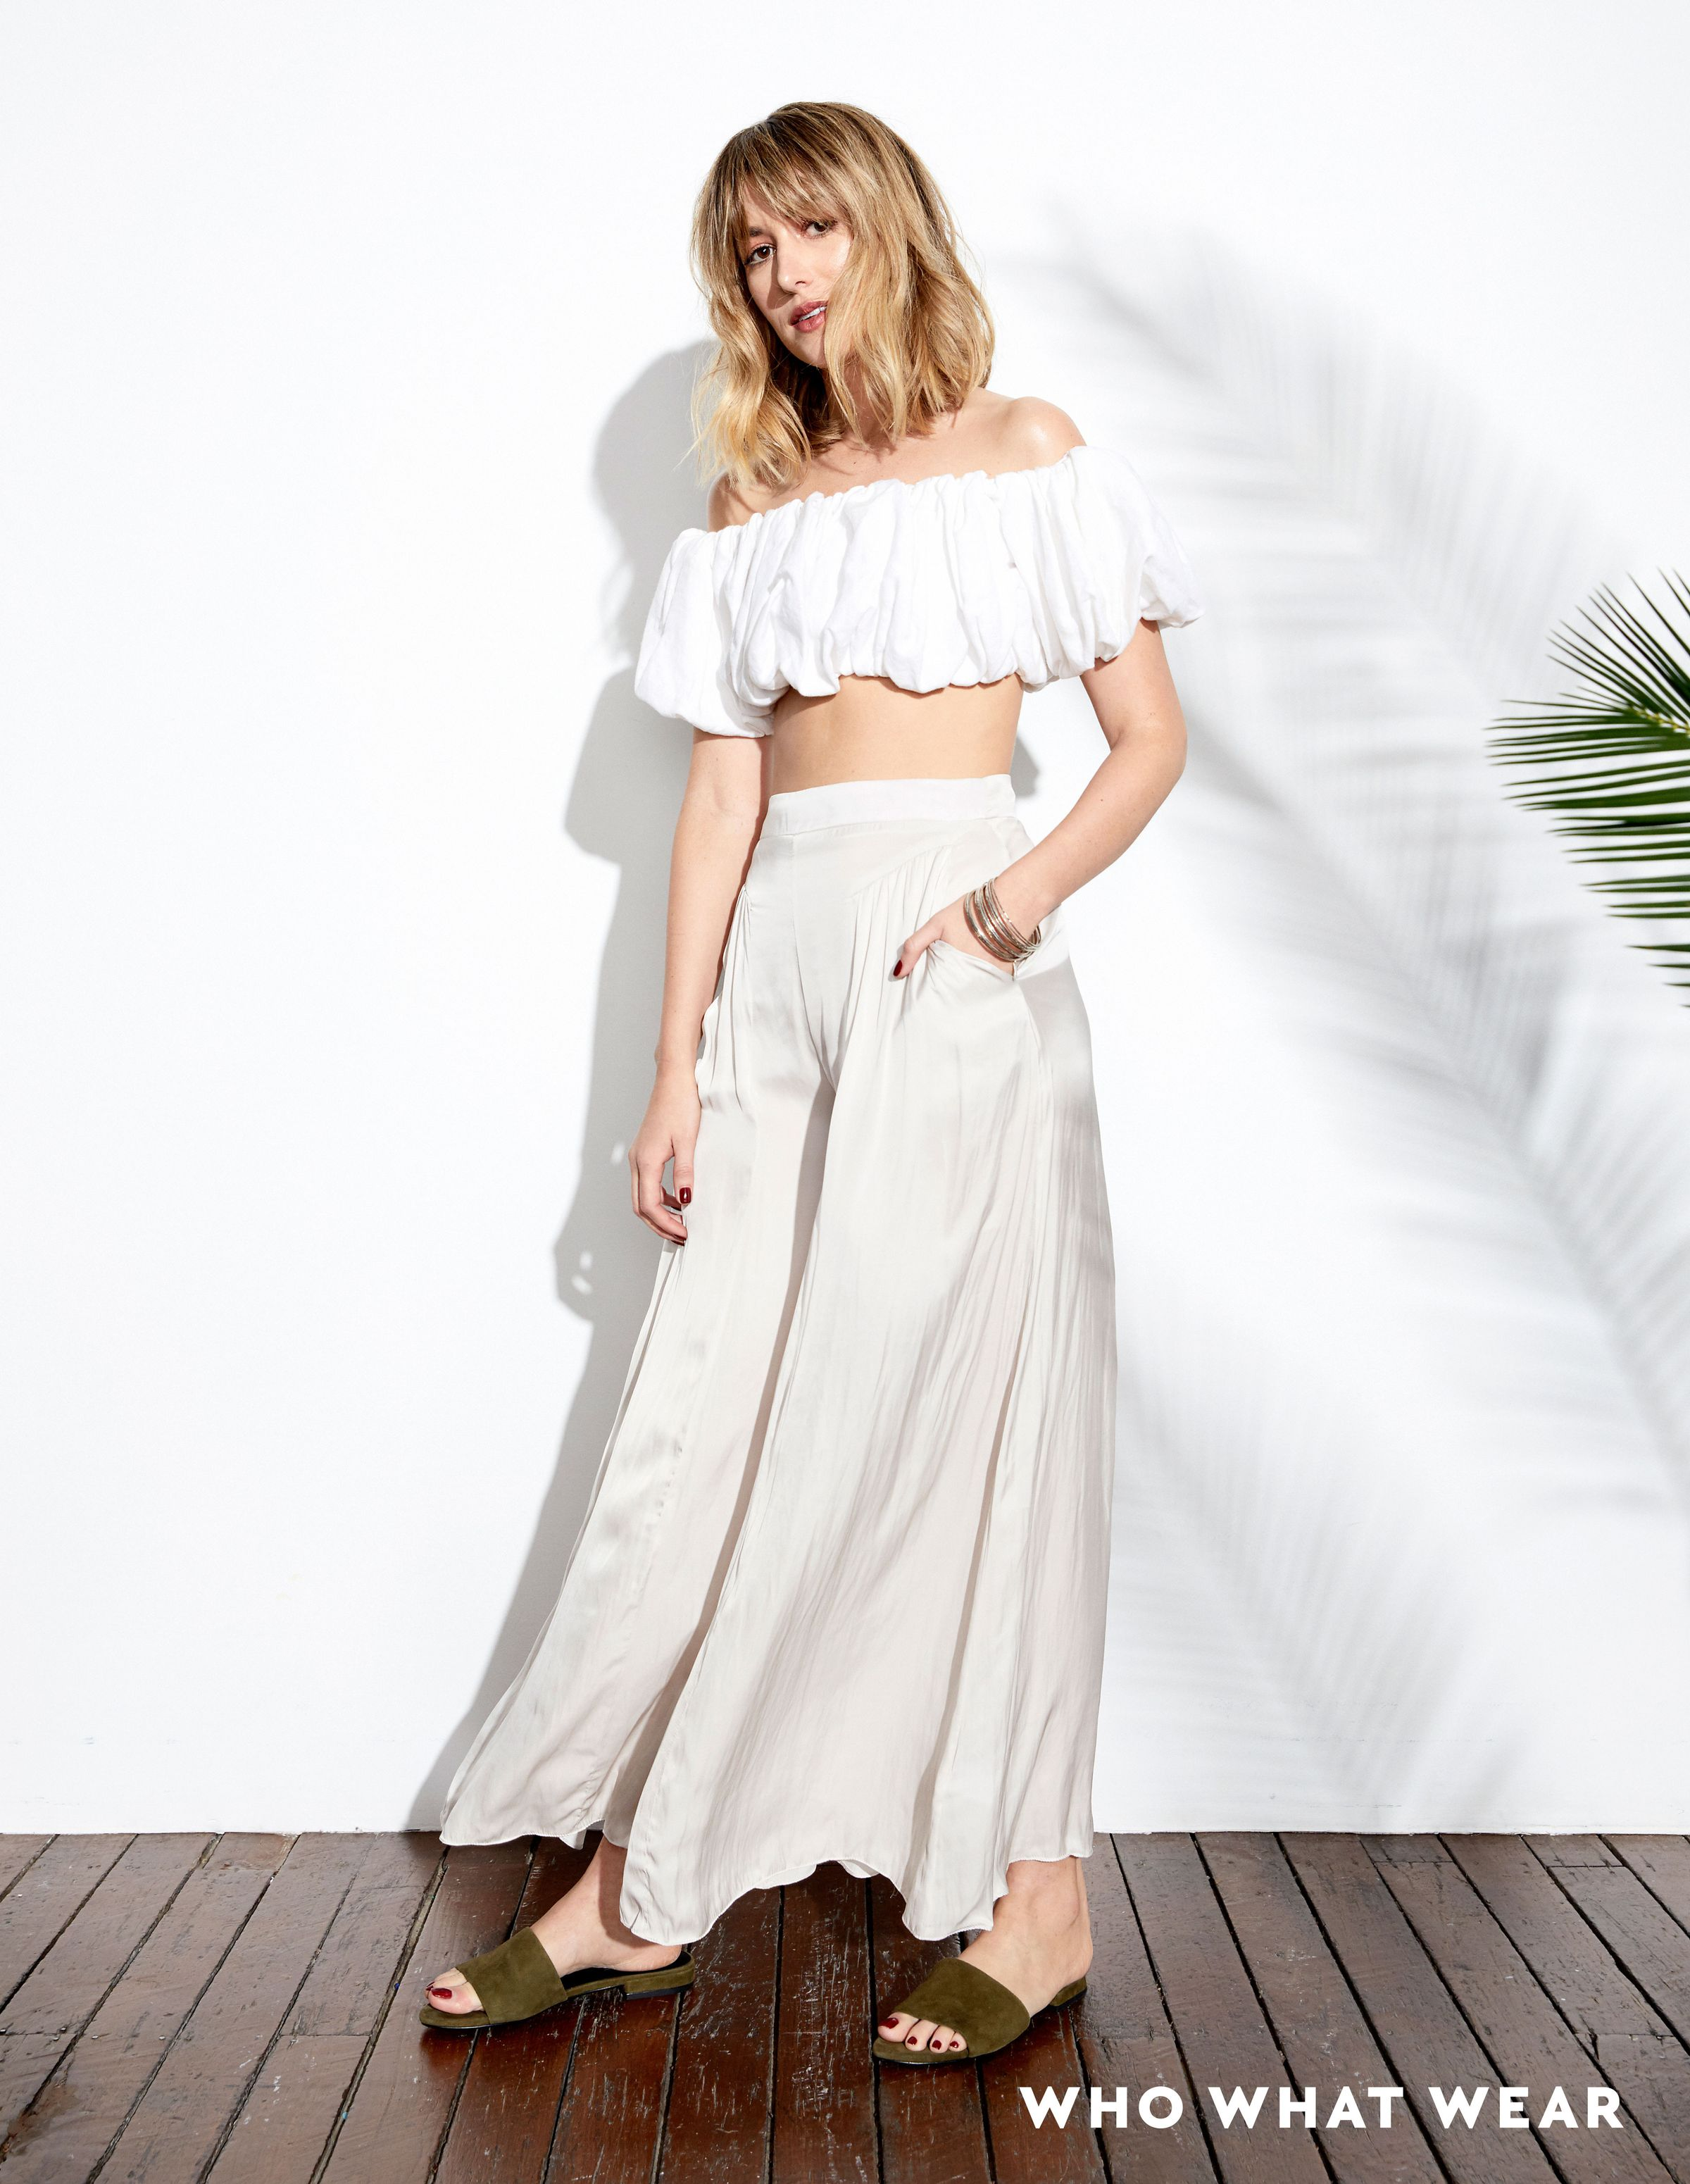 """<p><em>Pictured: Georgia Alice <a href=""""http://georgiaalice.com/collections/all"""" target=""""_blank"""">Crop Top</a>(coming soon), Morrison <a href=""""https://morrisonshop.com/pants/corbett-pant.html""""..."""